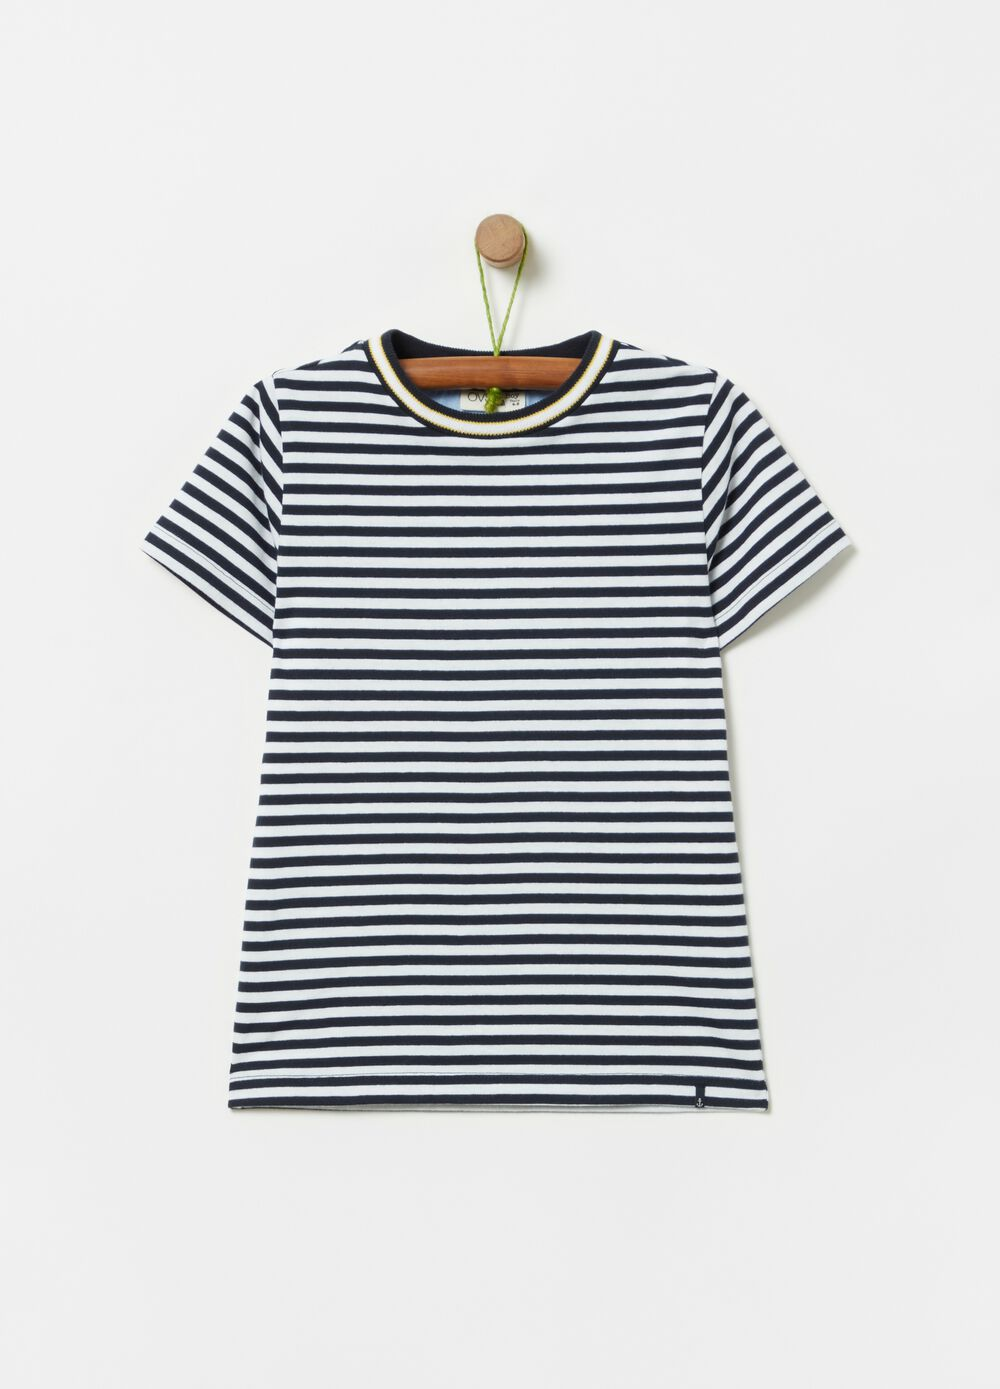 100% organic cotton T-shirt with stripes